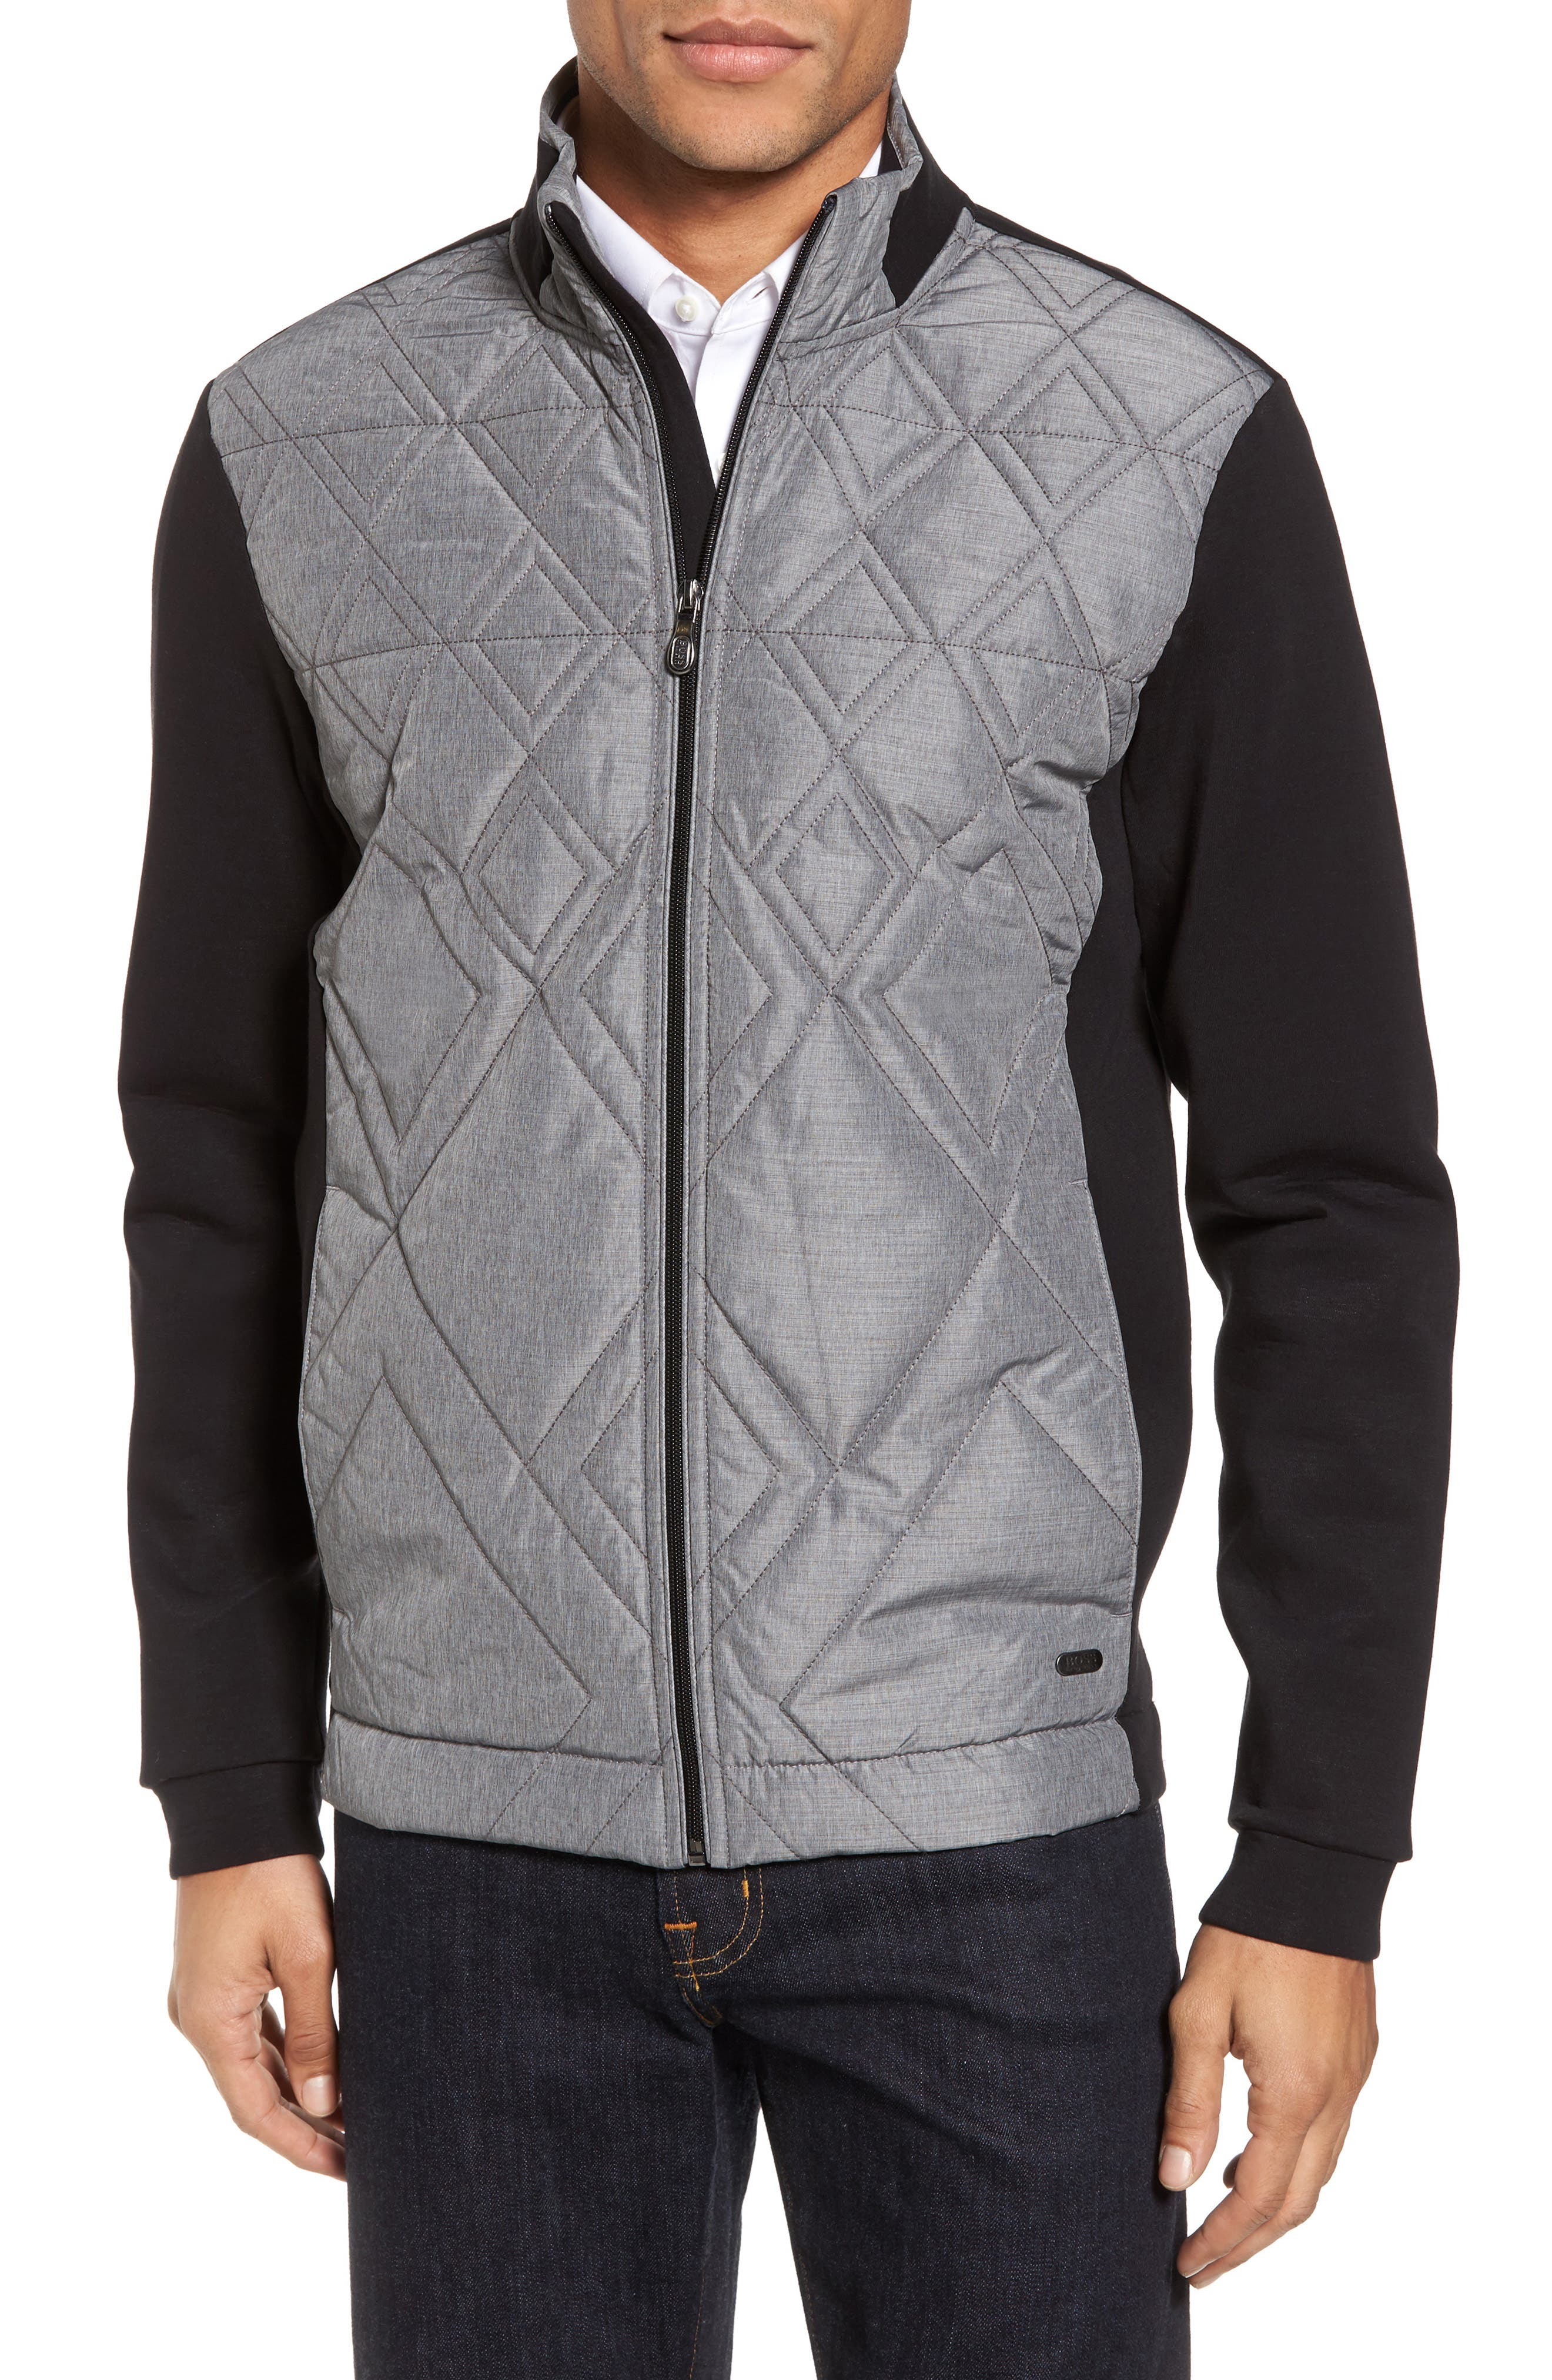 C-Pizzoli Quilted Jacket,                             Main thumbnail 1, color,                             001